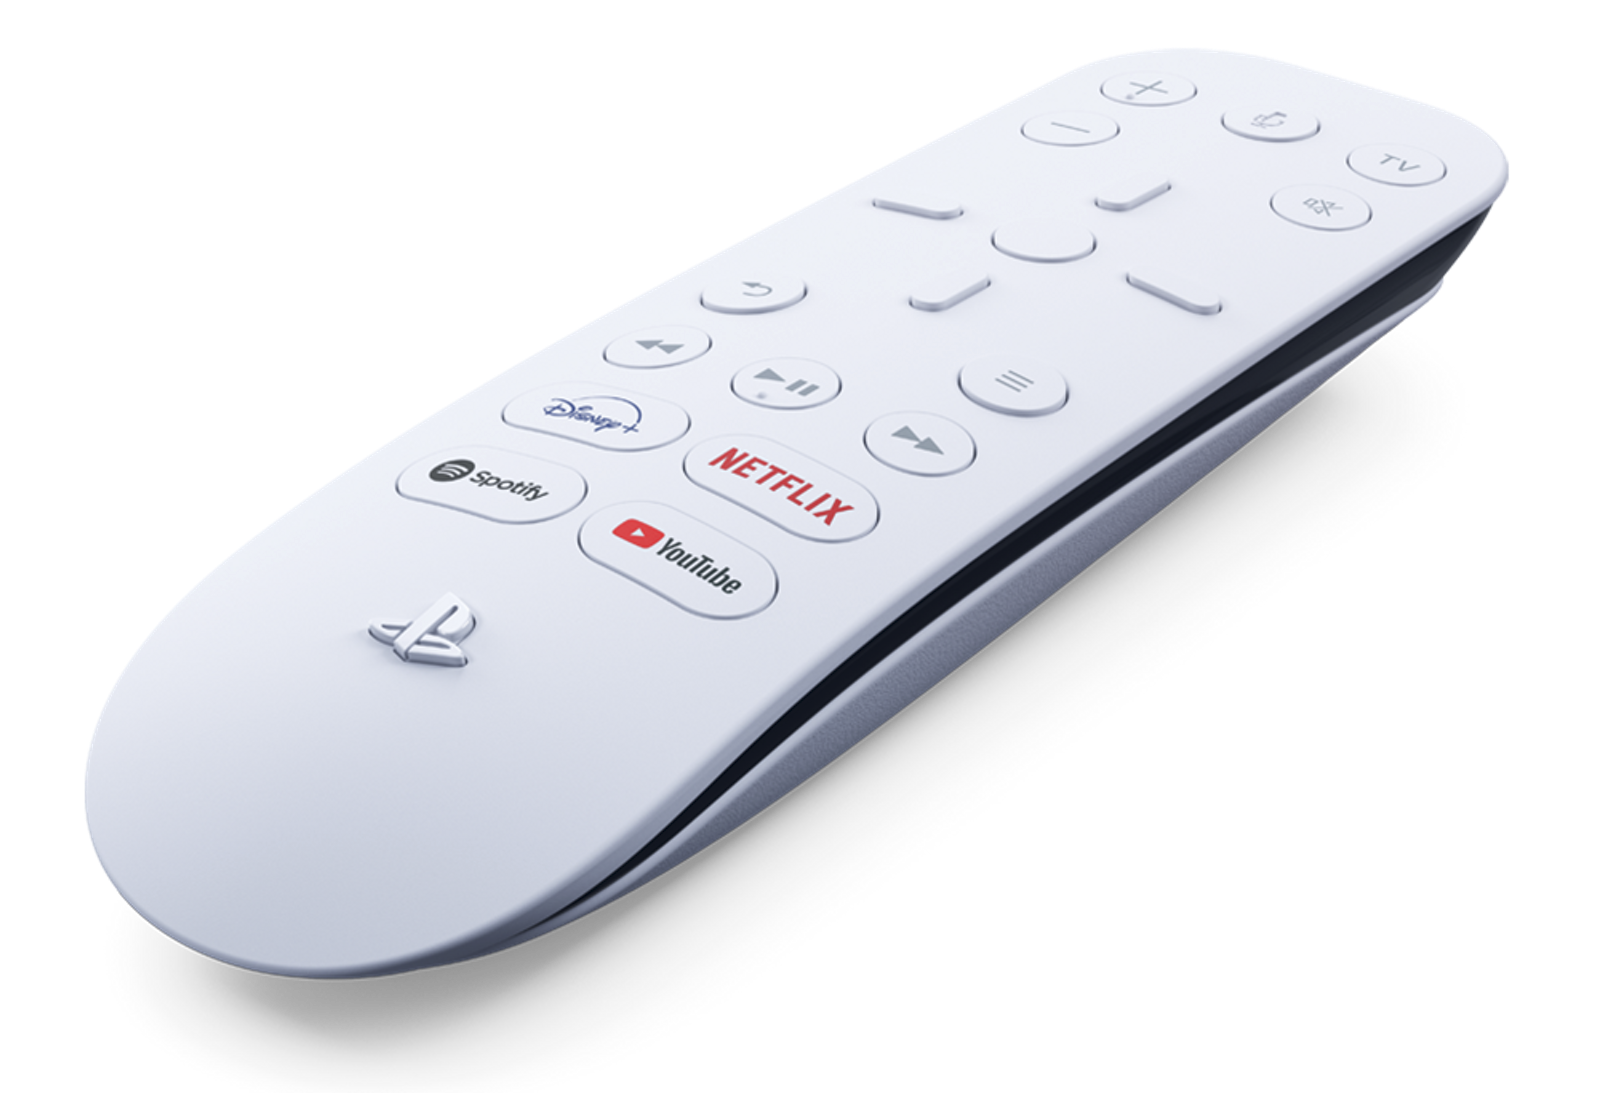 The PS5's white media remote, with the standard remote buttons along with buttons for Youtube, Netflix, Spotify, and Disney+.